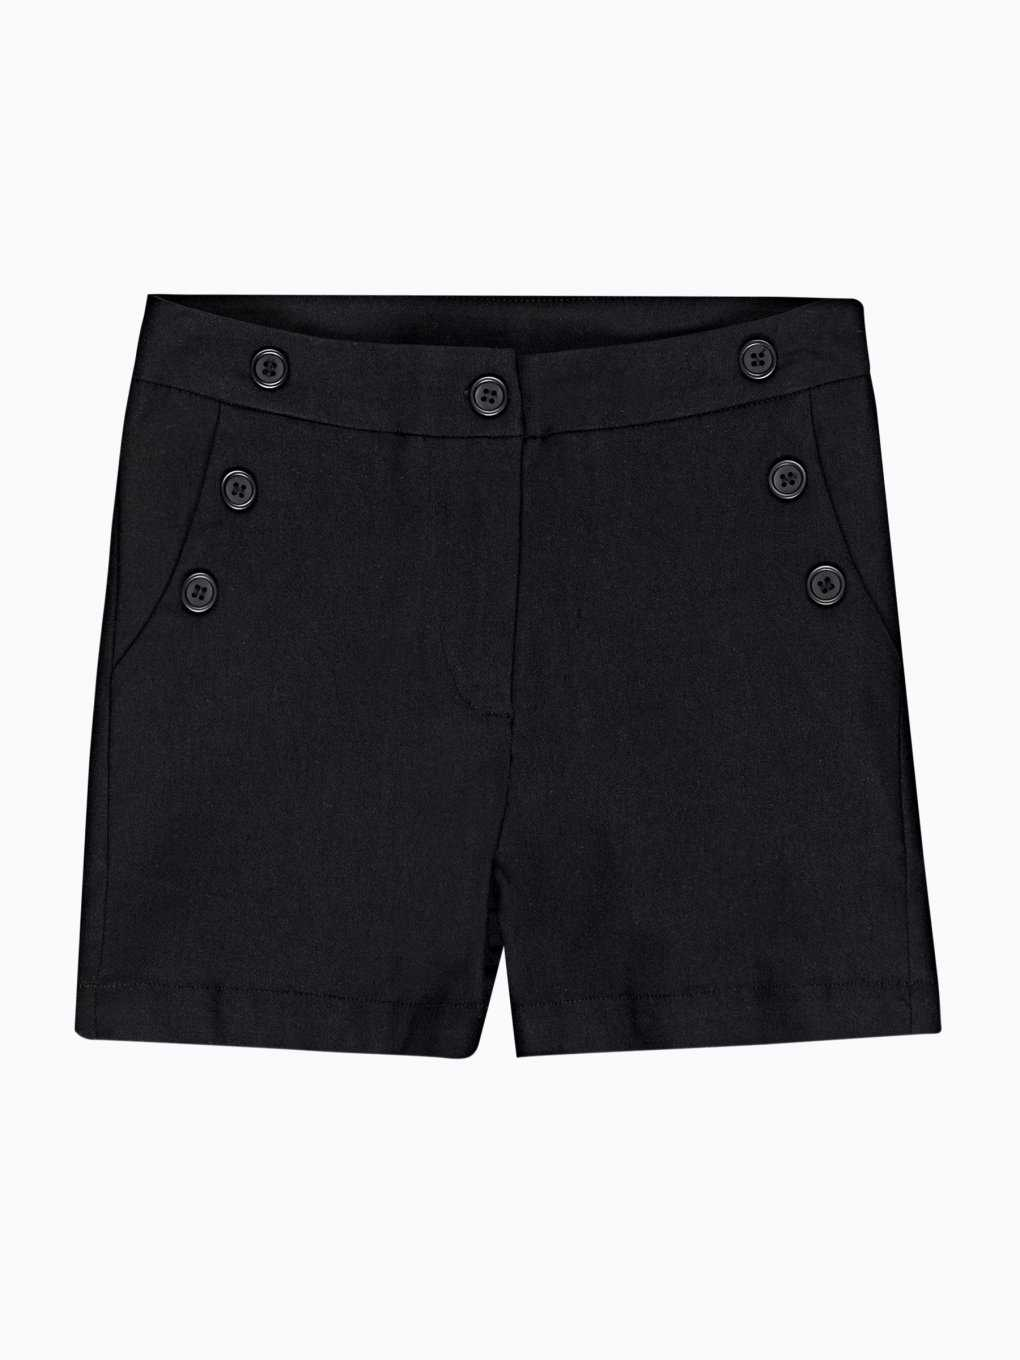 Shorts with decorative buttons